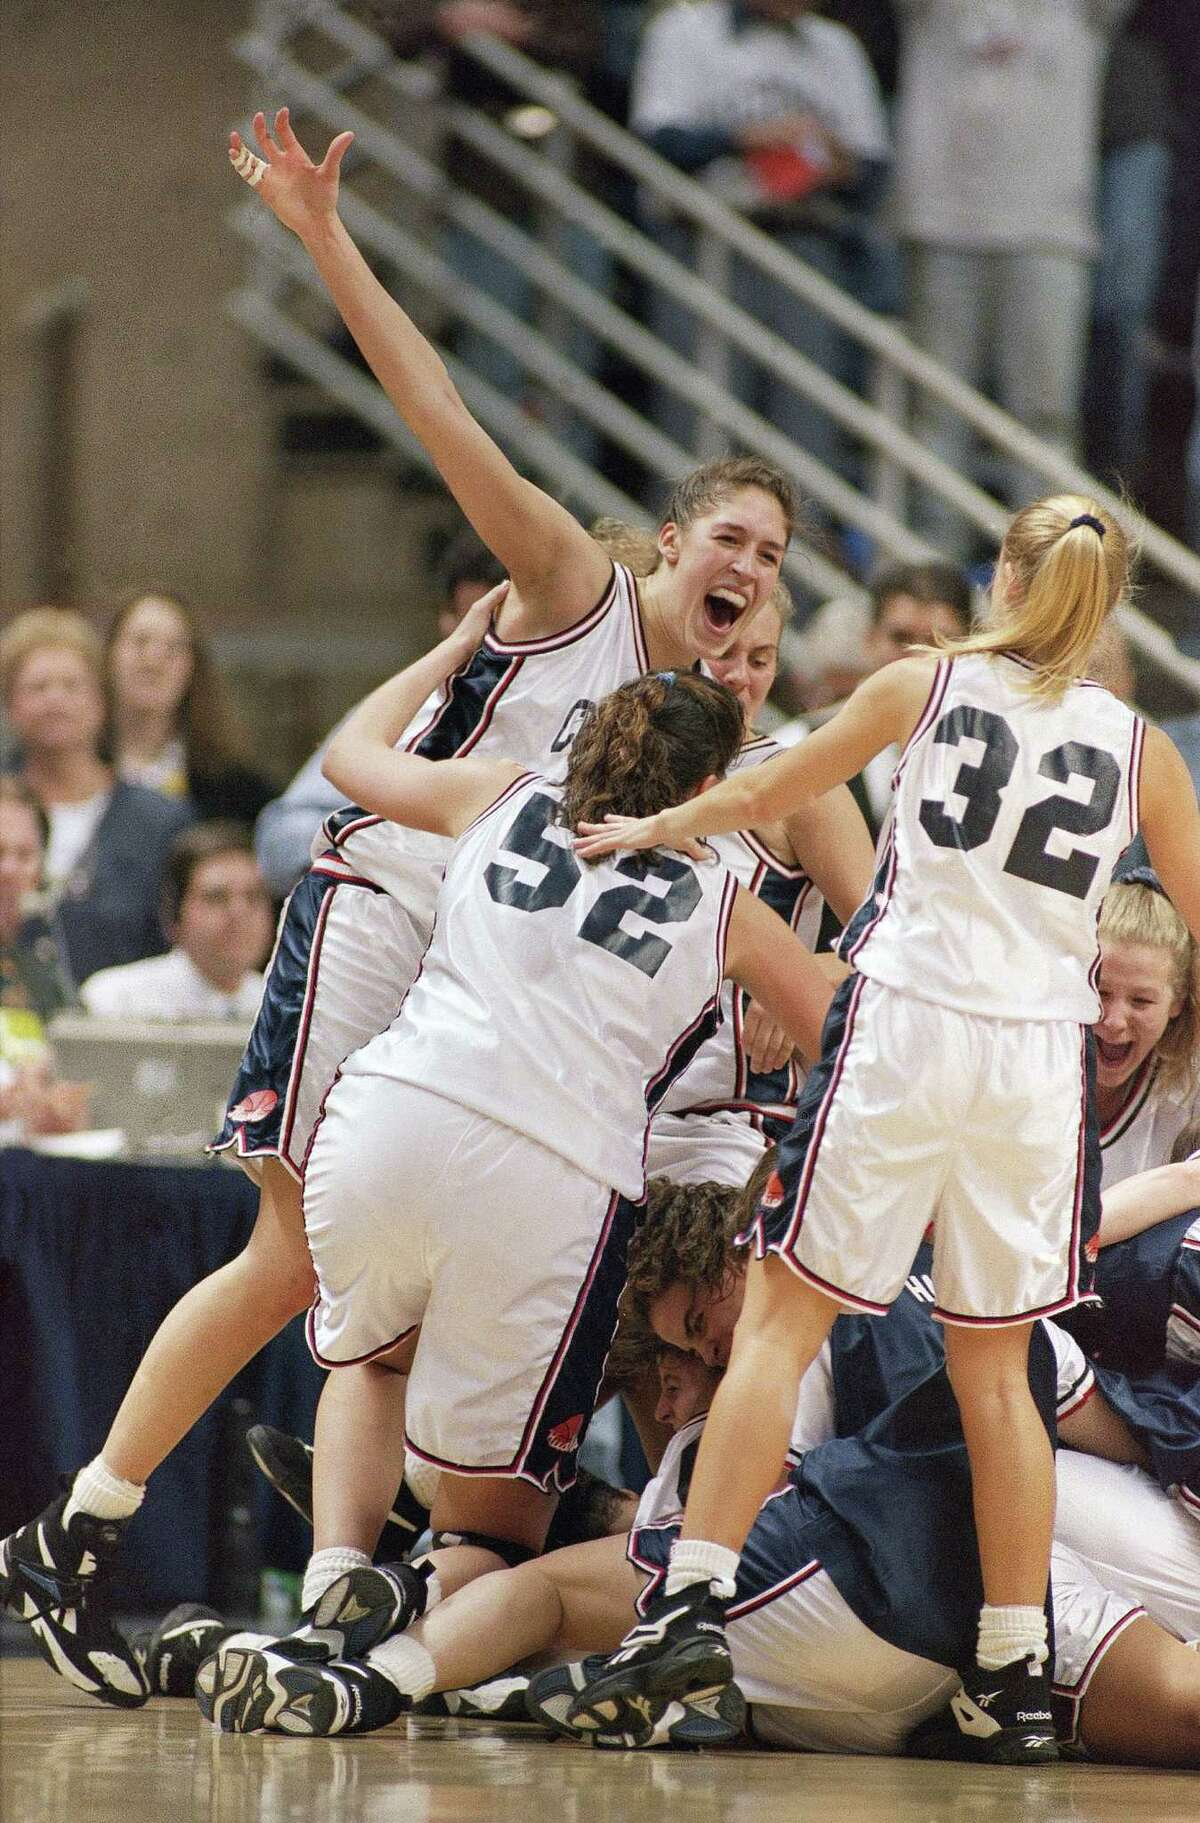 FILE - In this April 3, 1995, file photo, UConn's Rebecca Lobo, left, celebrates with teammates including Kara Wolters (52) and Pam Weber (32) after they defeated Virginia 67-63 to win the NCAA East Regional Championship, in Storrs, Conn. No current UConn player was even born the last time this program had a losing streak. And that mark is safe for at least another year, which has Rebecca Lobo thinking about popping the champagne with her former teammates _ the ones who actually lost two in a row. (AP Photo/John Dunn, File) ORG XMIT: NY166